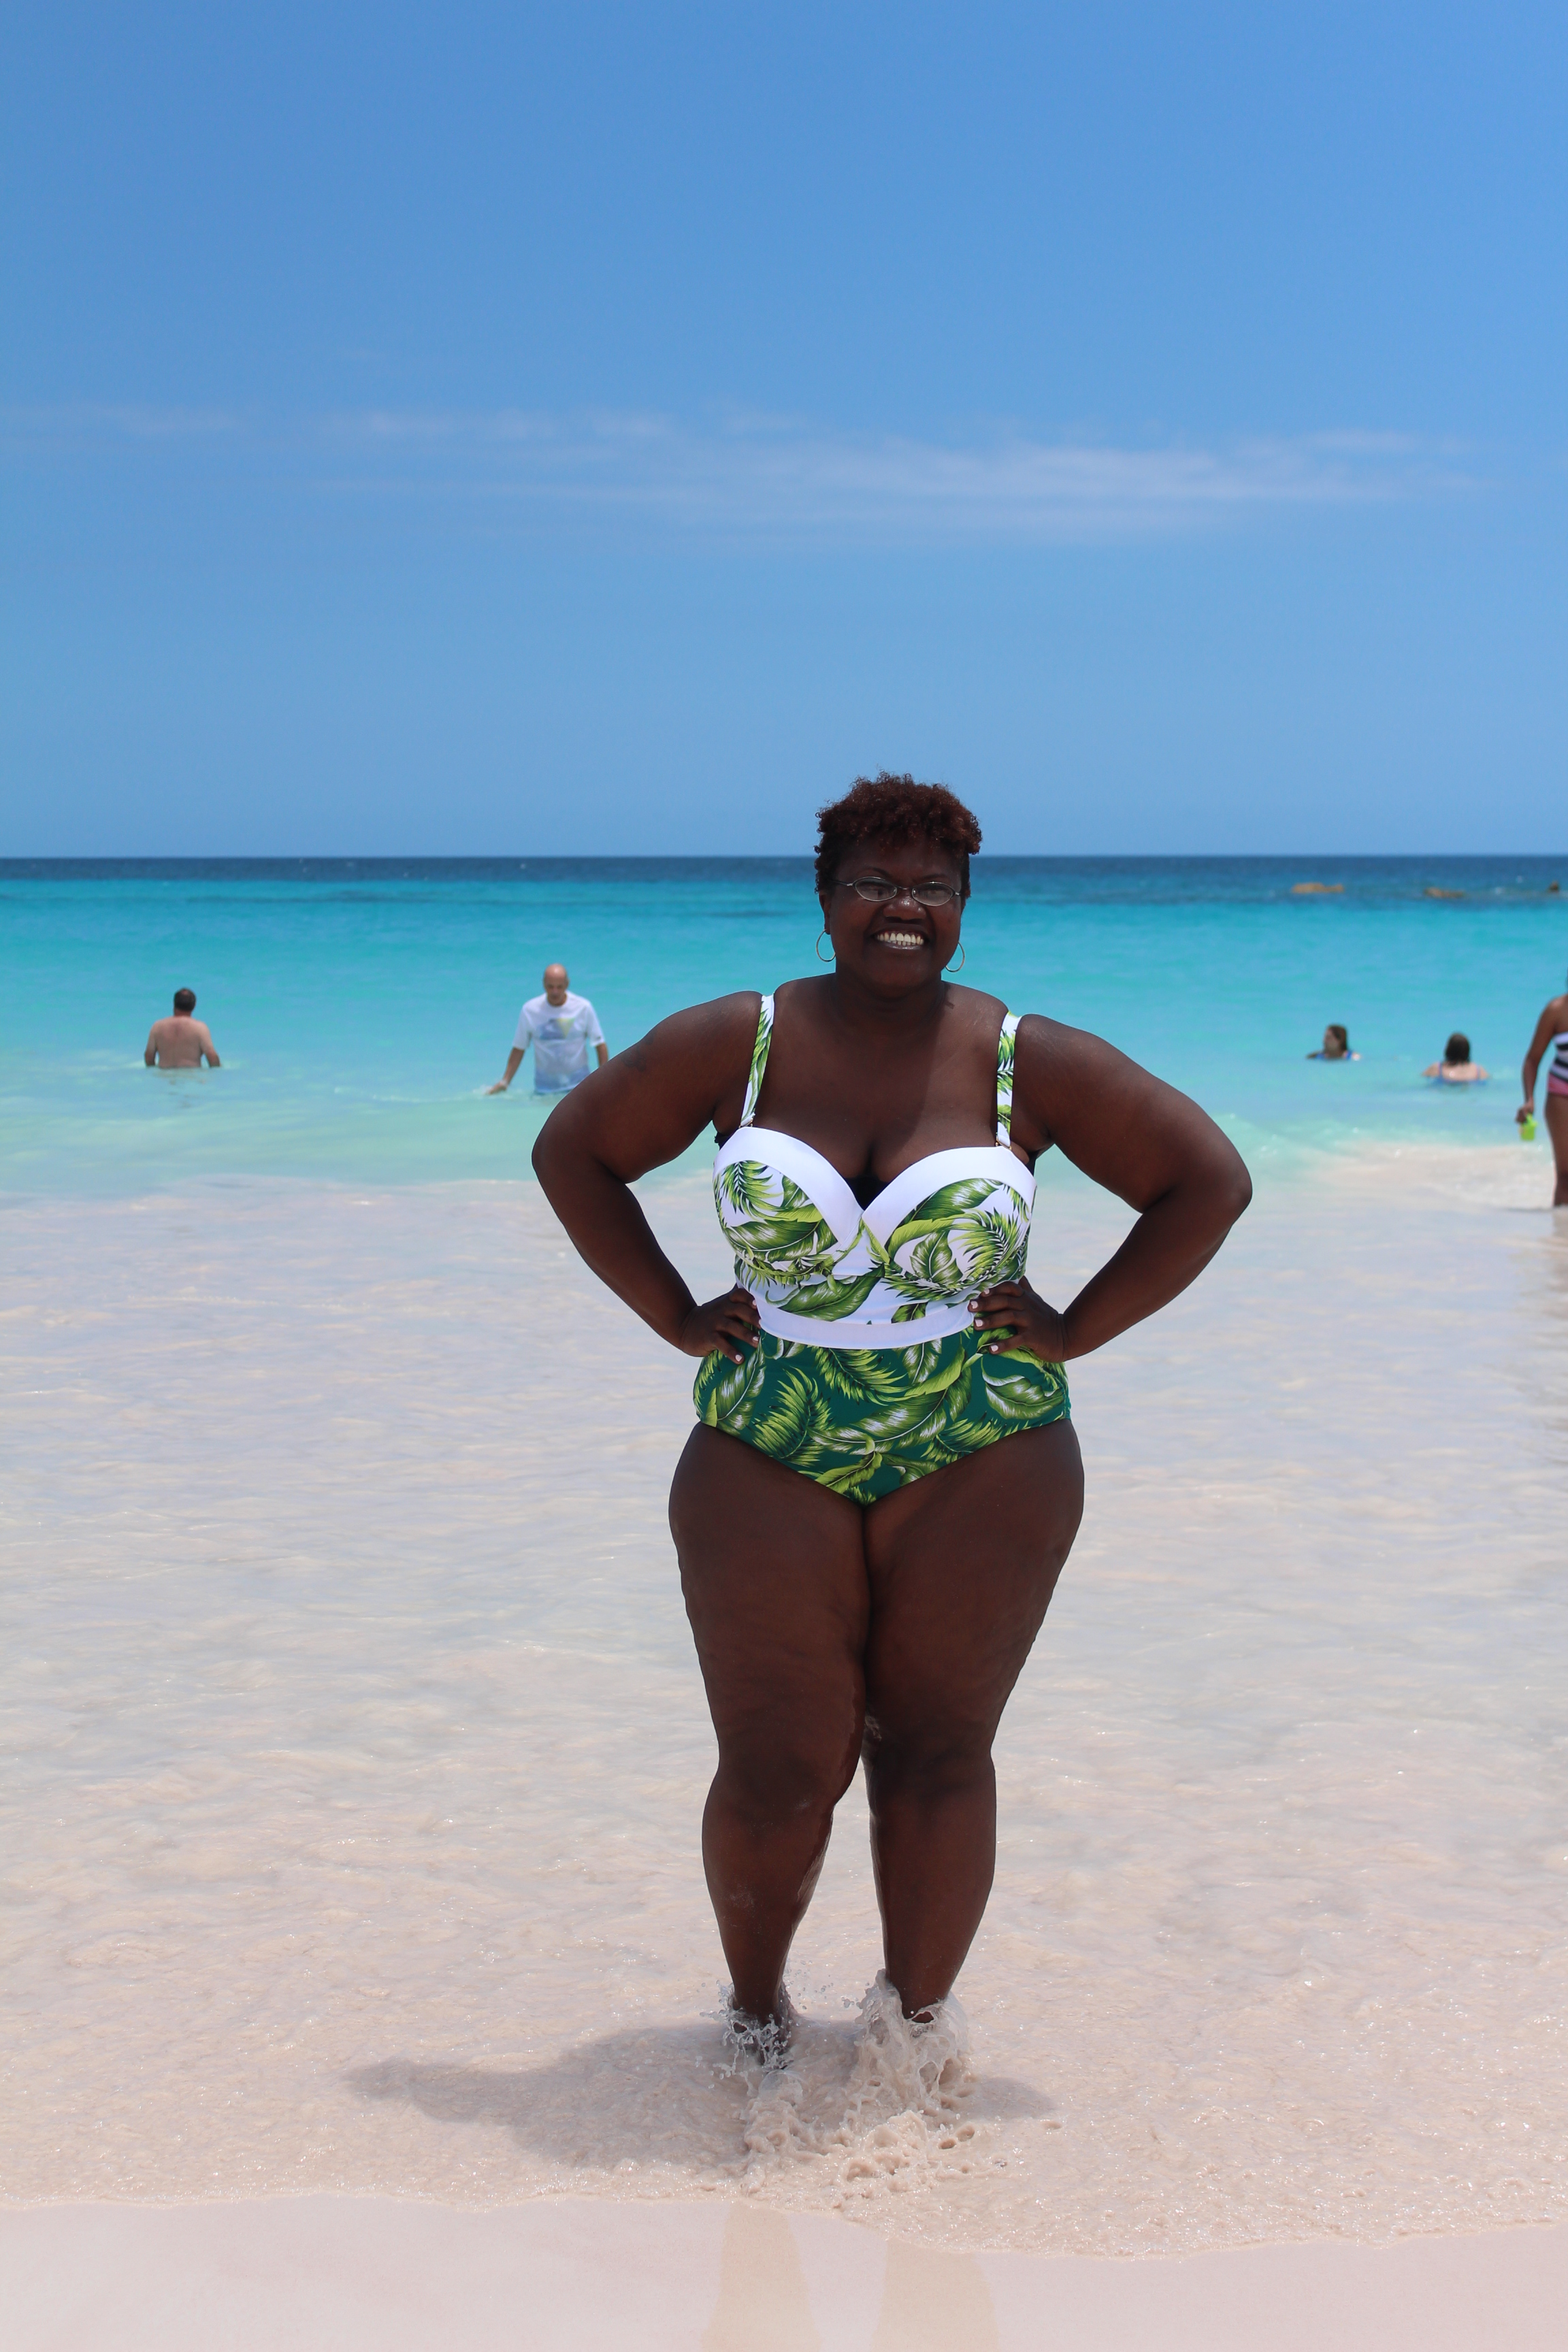 curvy, curvy women, curvy girls, curvy swimwear, plus size swimwear, plus size bathing suits, one piece plus size bathing suits, palm print bathing suits, palm prints, grown and curvy woman, grown and curvy woman blog,  plus size fashion, summer trends, plus size blogger, plus size blogs,